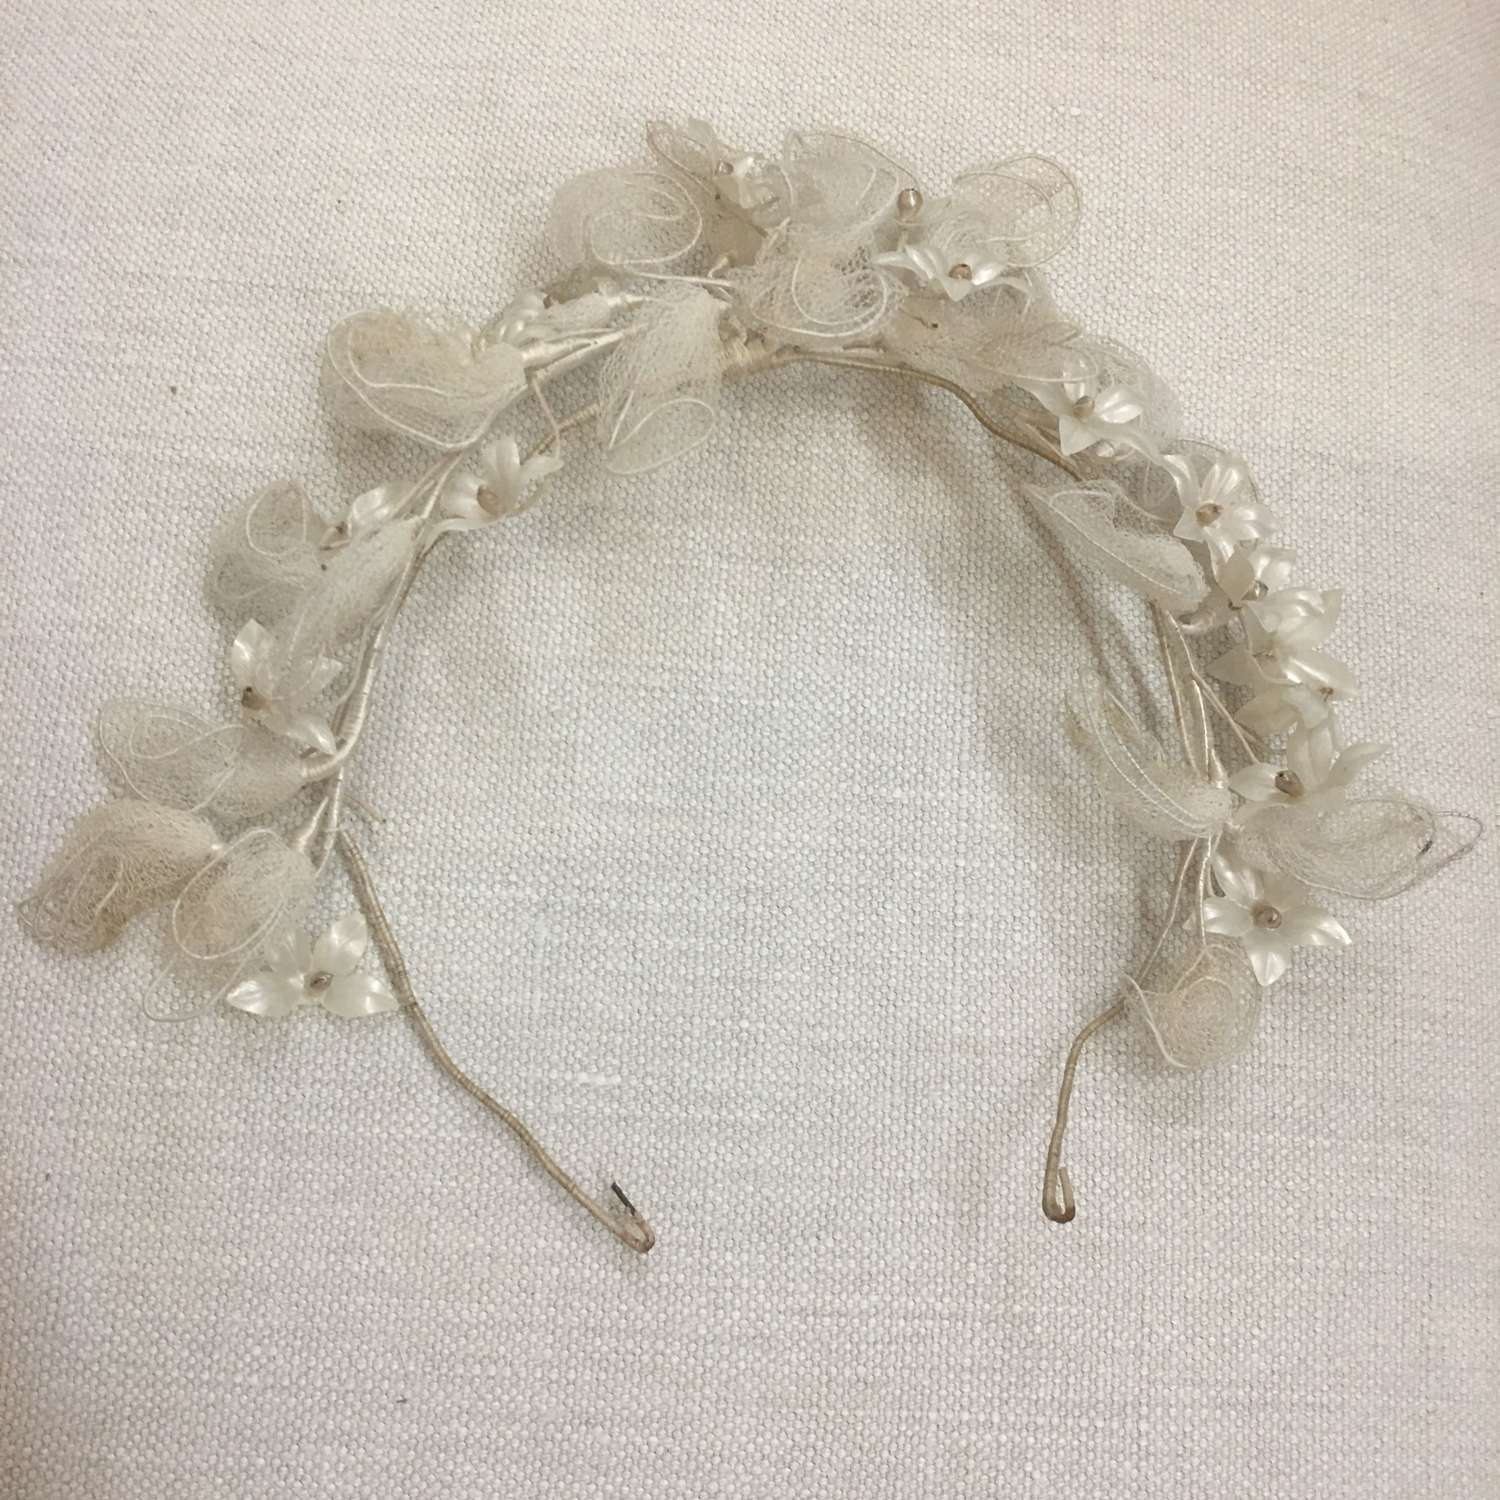 Antique French wedding headdress